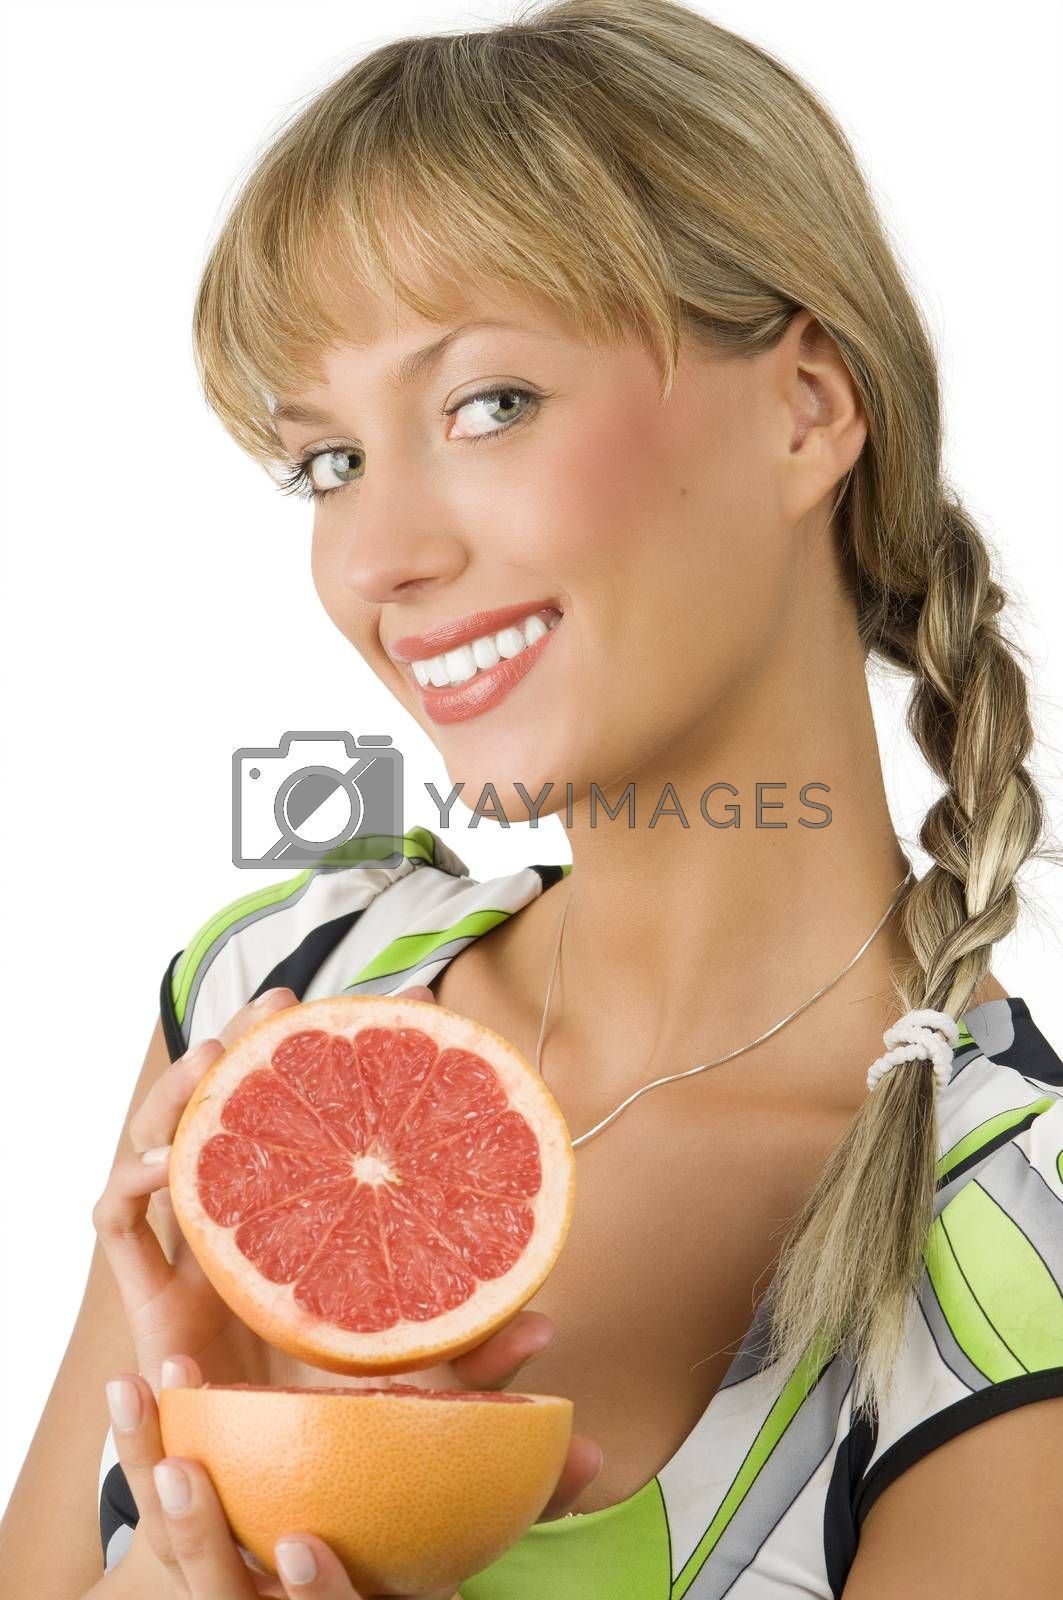 Royalty free image of showing grapefruit by fotoCD